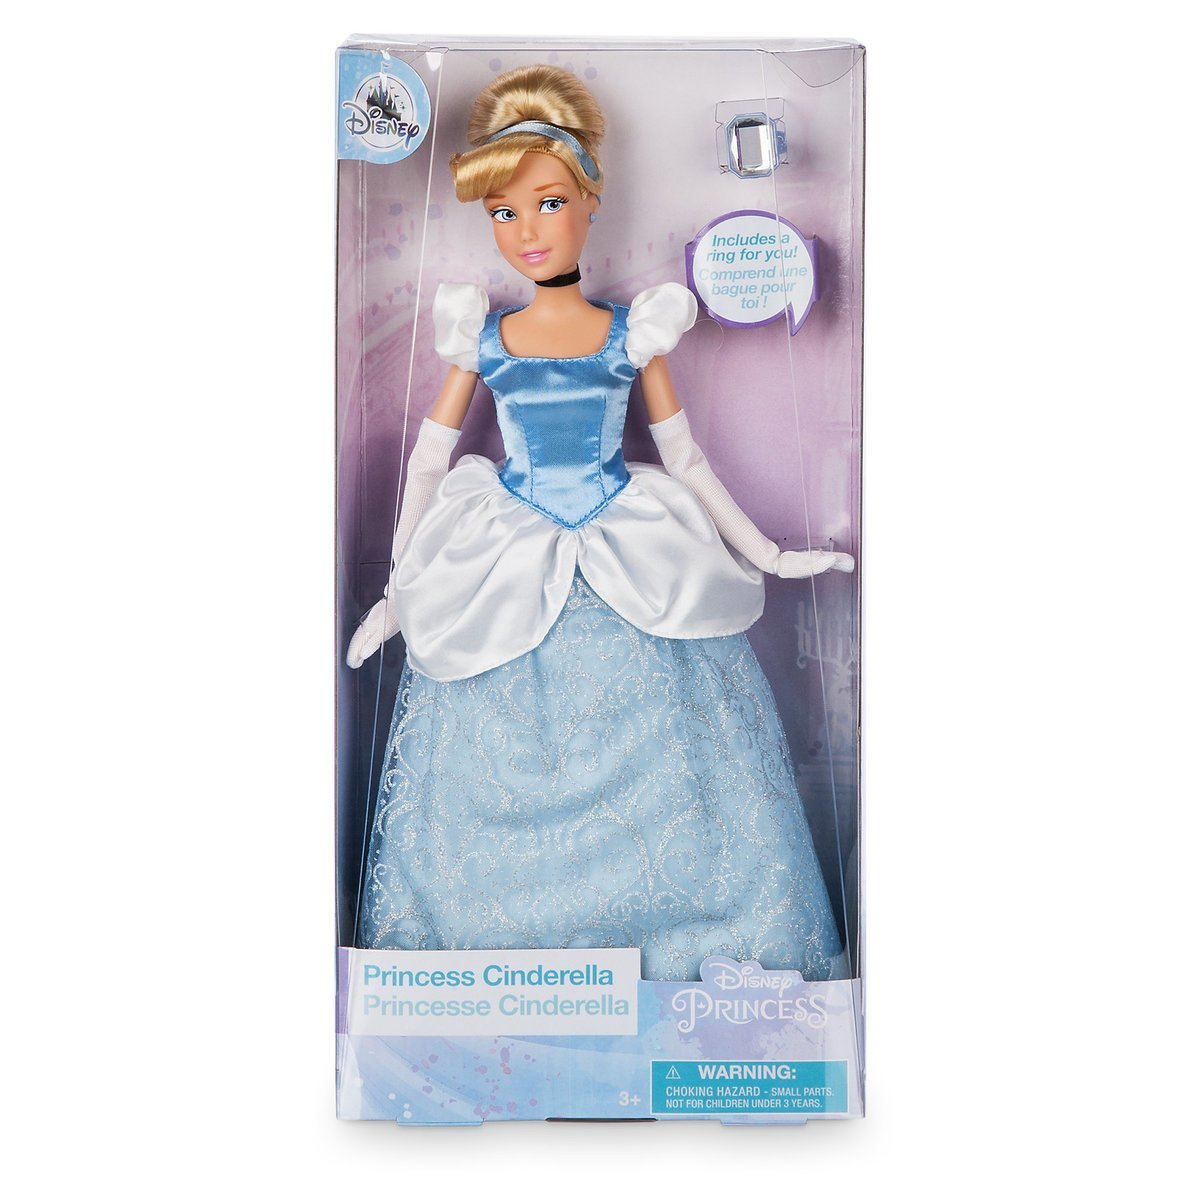 Disney Princess Cinderella Classic Doll with Ring New with Box